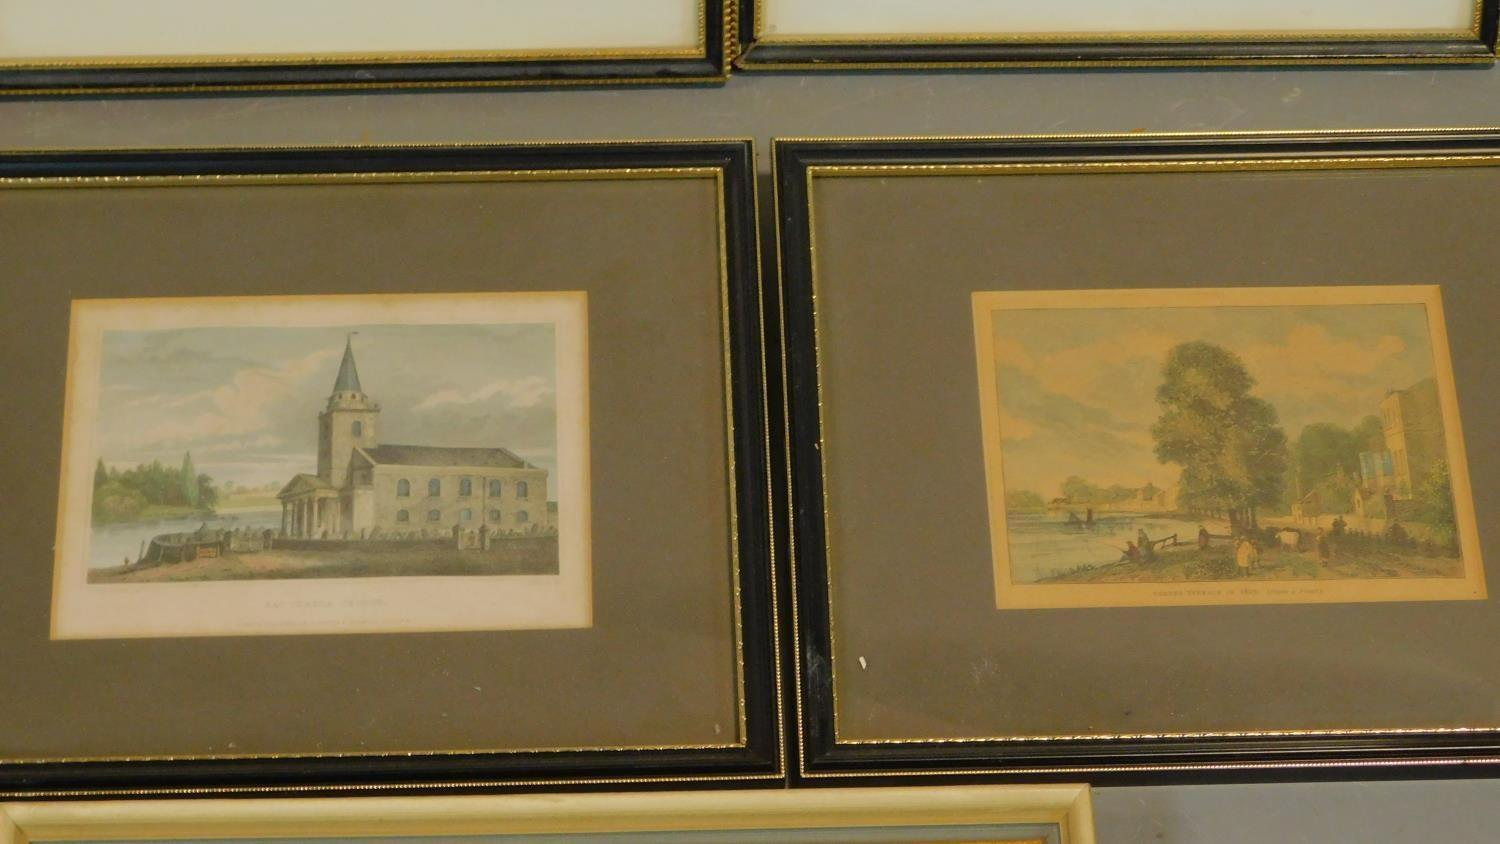 A miscellaneous collection of eleven framed and glazed prints of avian and architectural interest. - Image 4 of 7